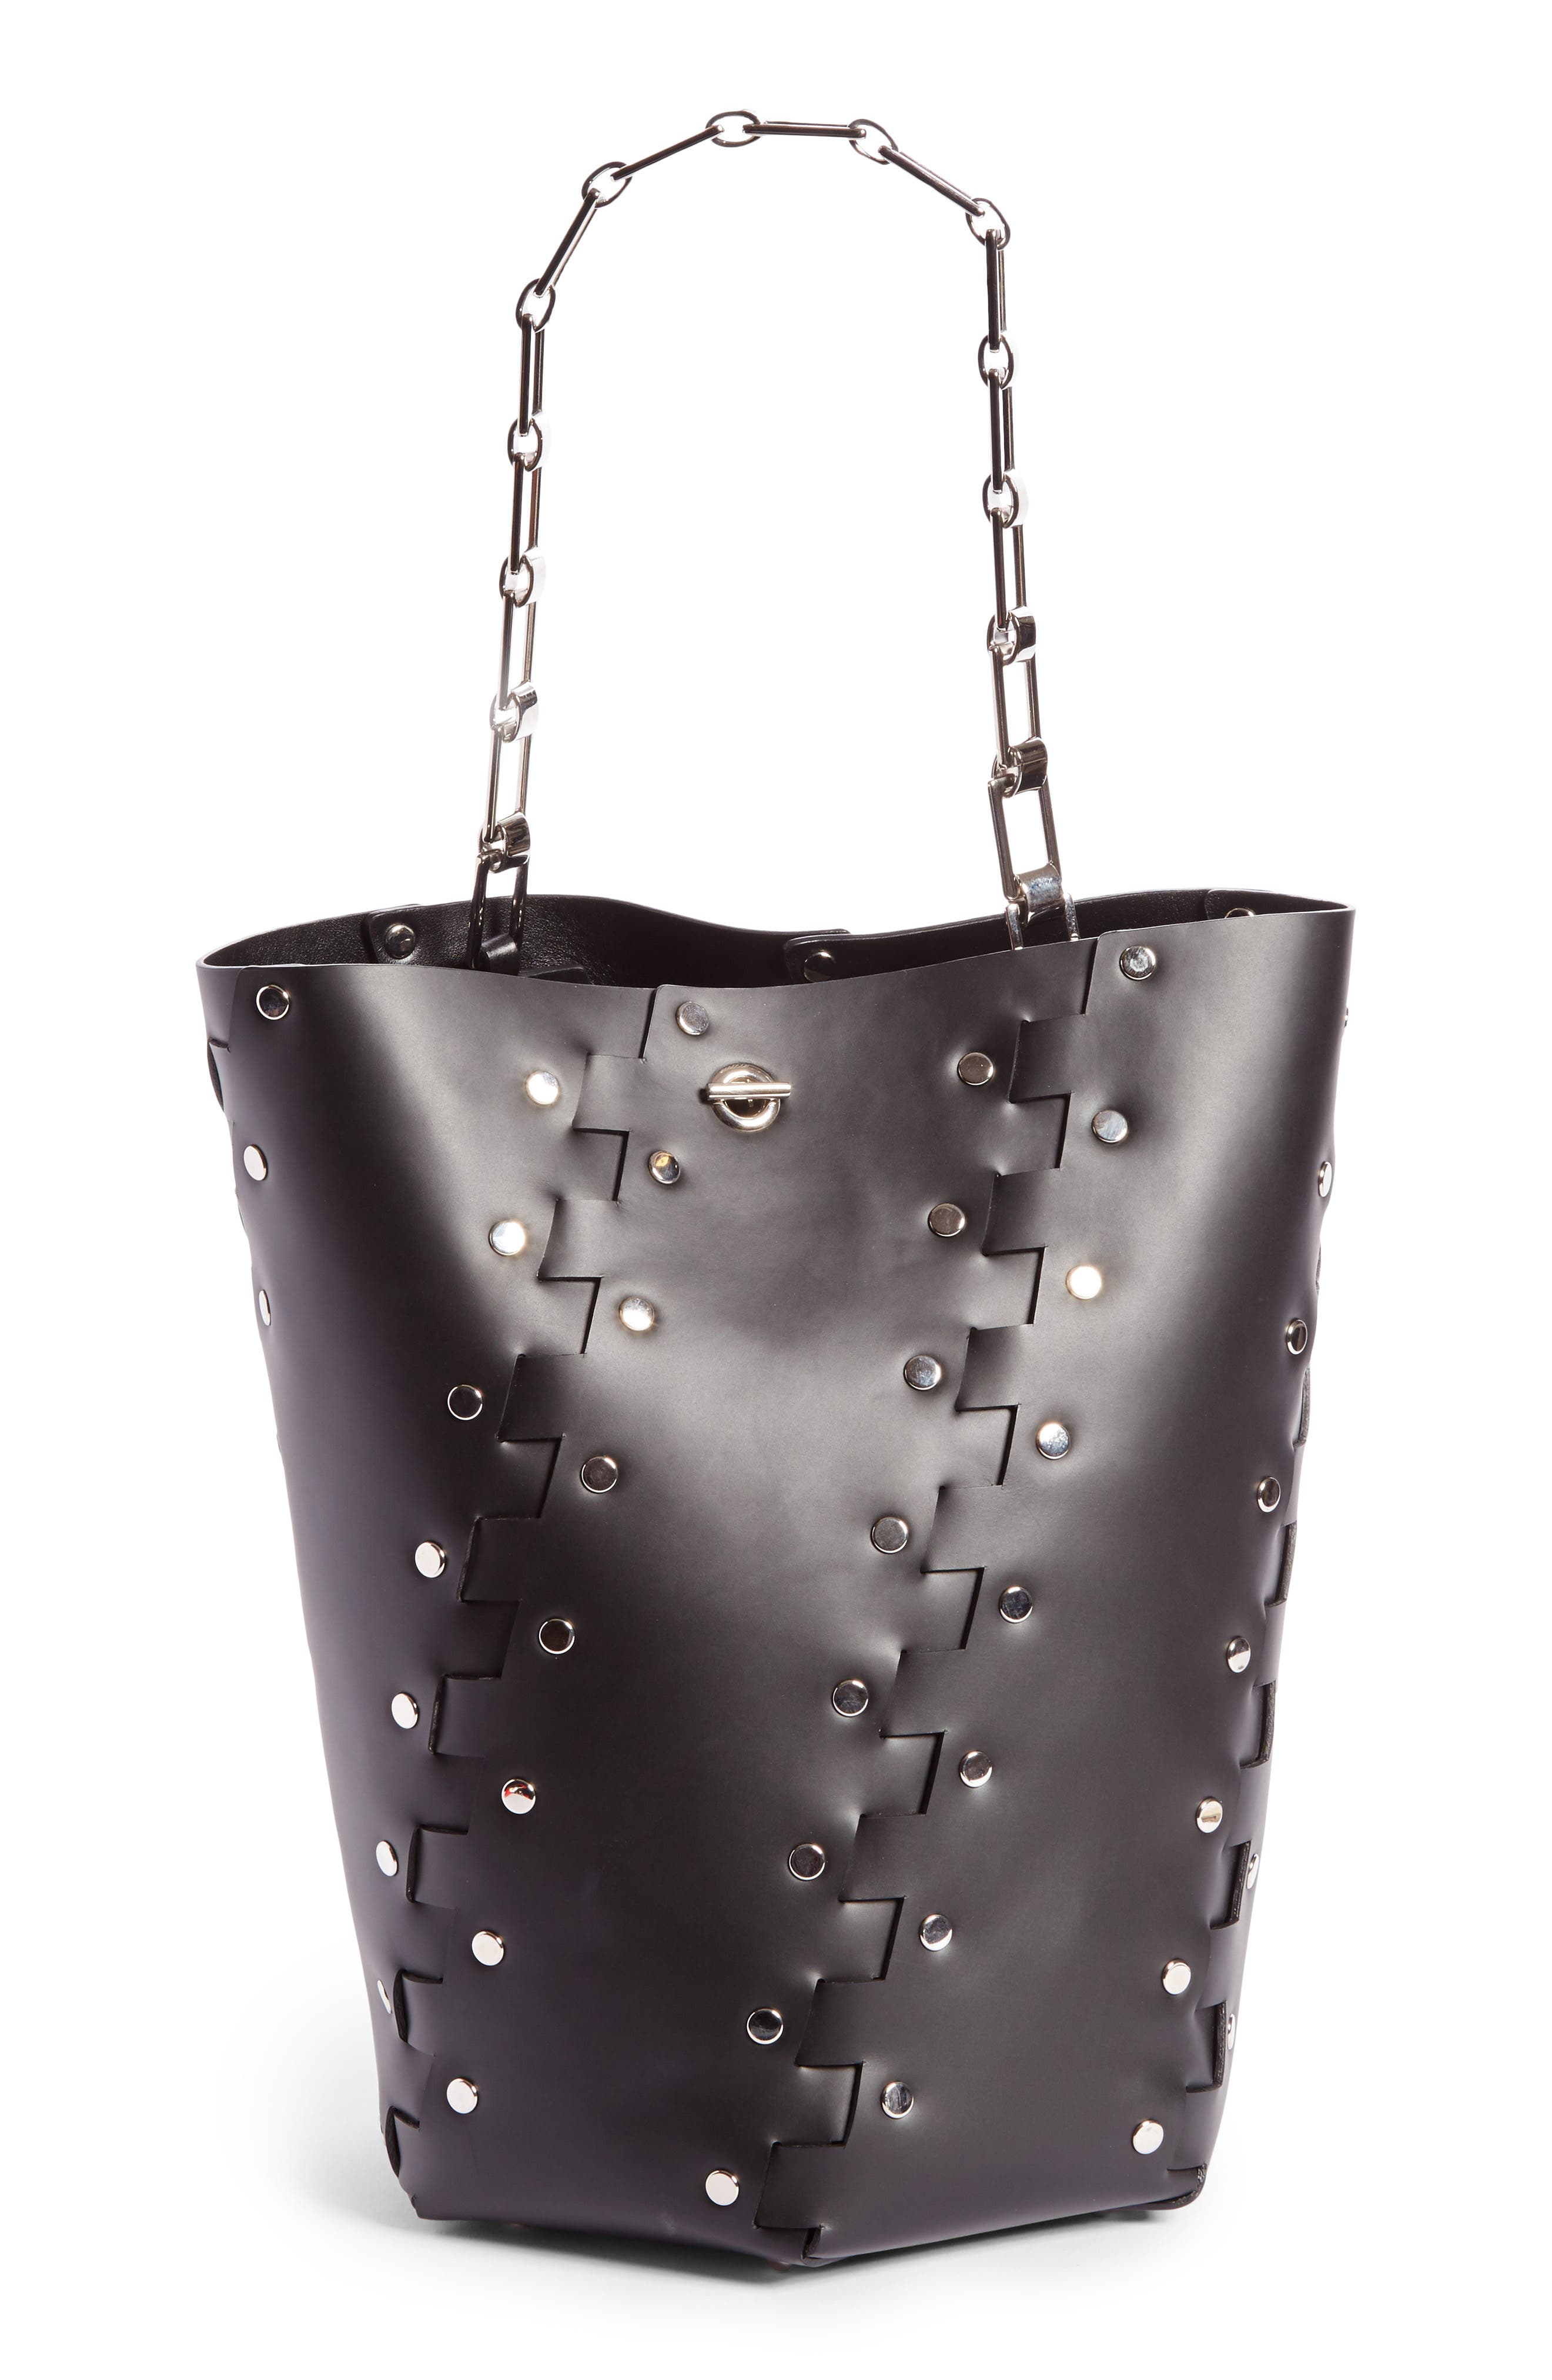 Alternate Image 1 Selected - Proenza Schouler Medium Hex Studded Leather Bucket Bag